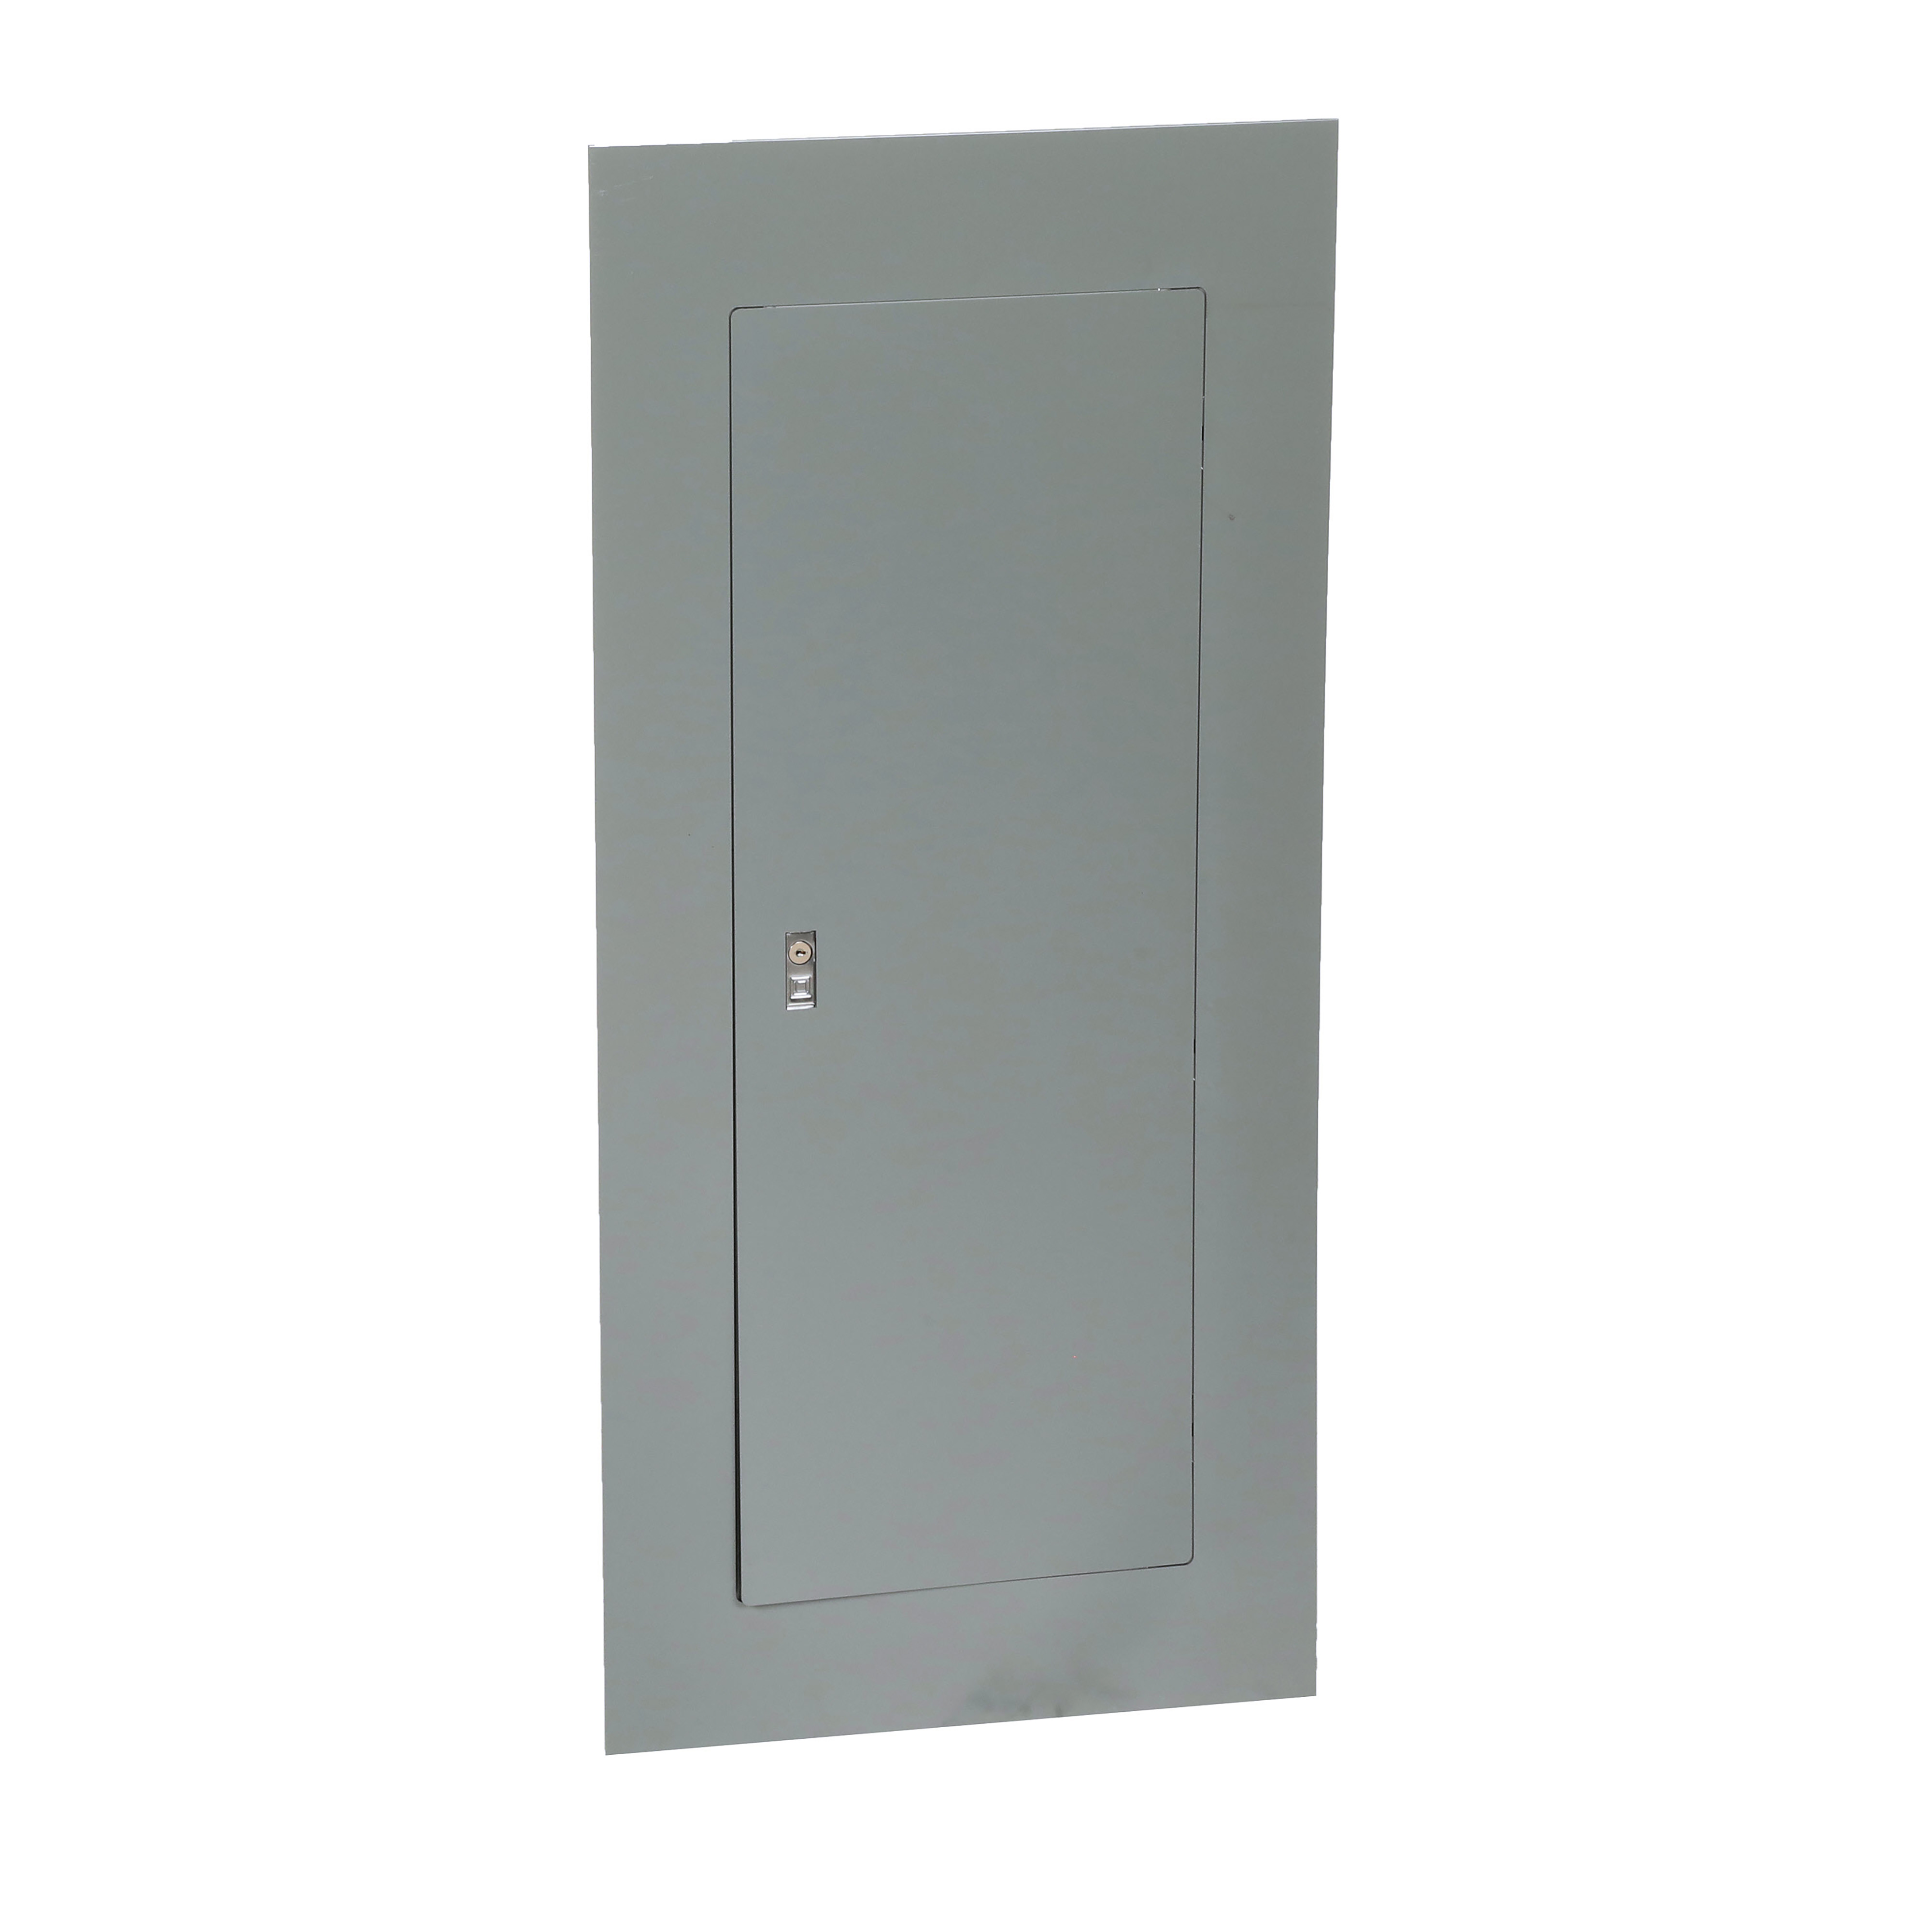 SQUARE D NC44S : PANELBOARD COVER/TRIM NF TYPE 1 S 44H